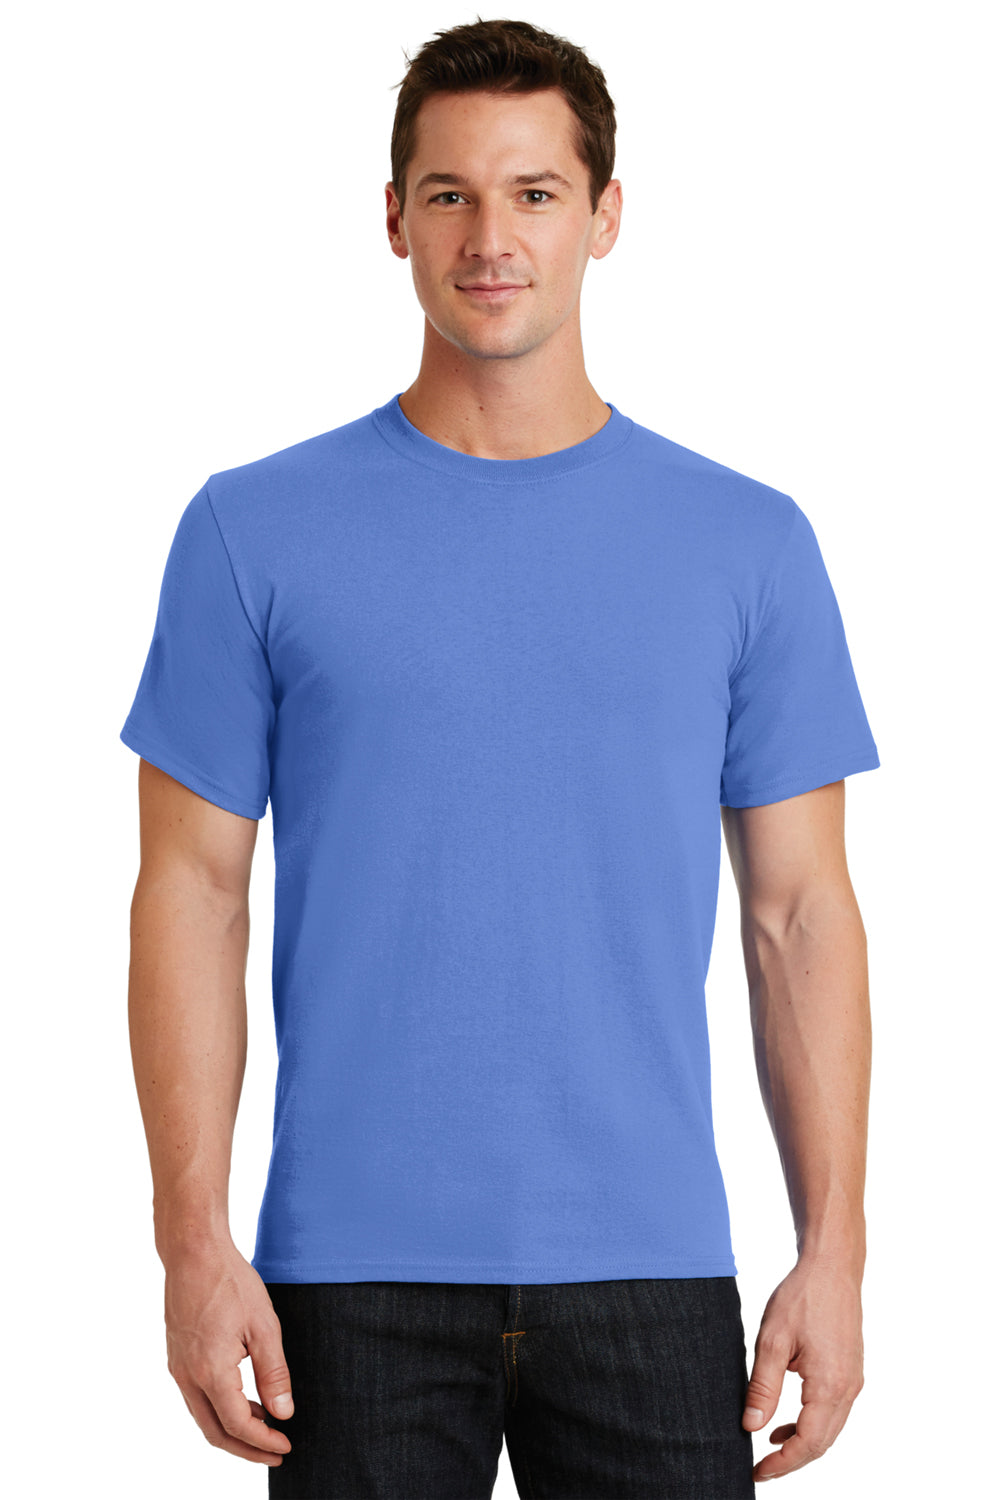 Port & Company PC61 Mens Essential Short Sleeve Crewneck T-Shirt Ultramarine Blue Front